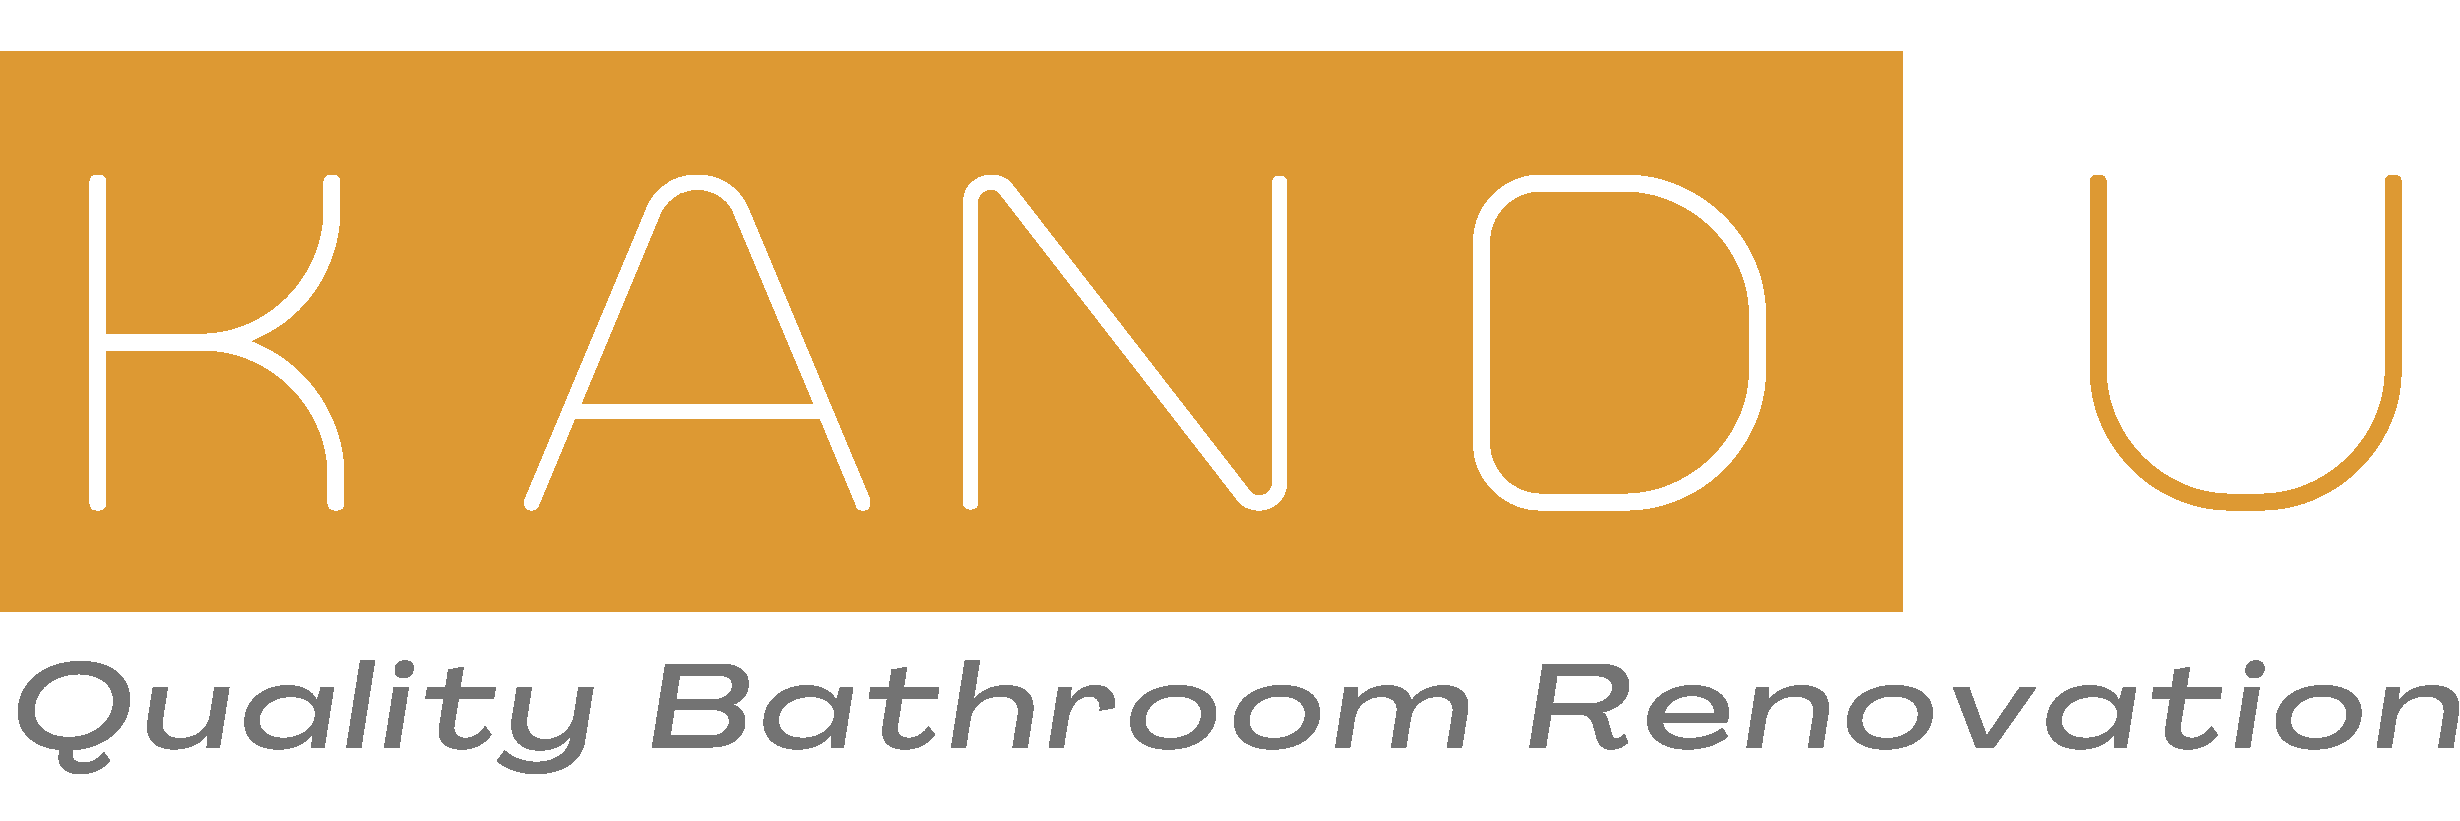 KANDU - Quality Bathroom Renovations